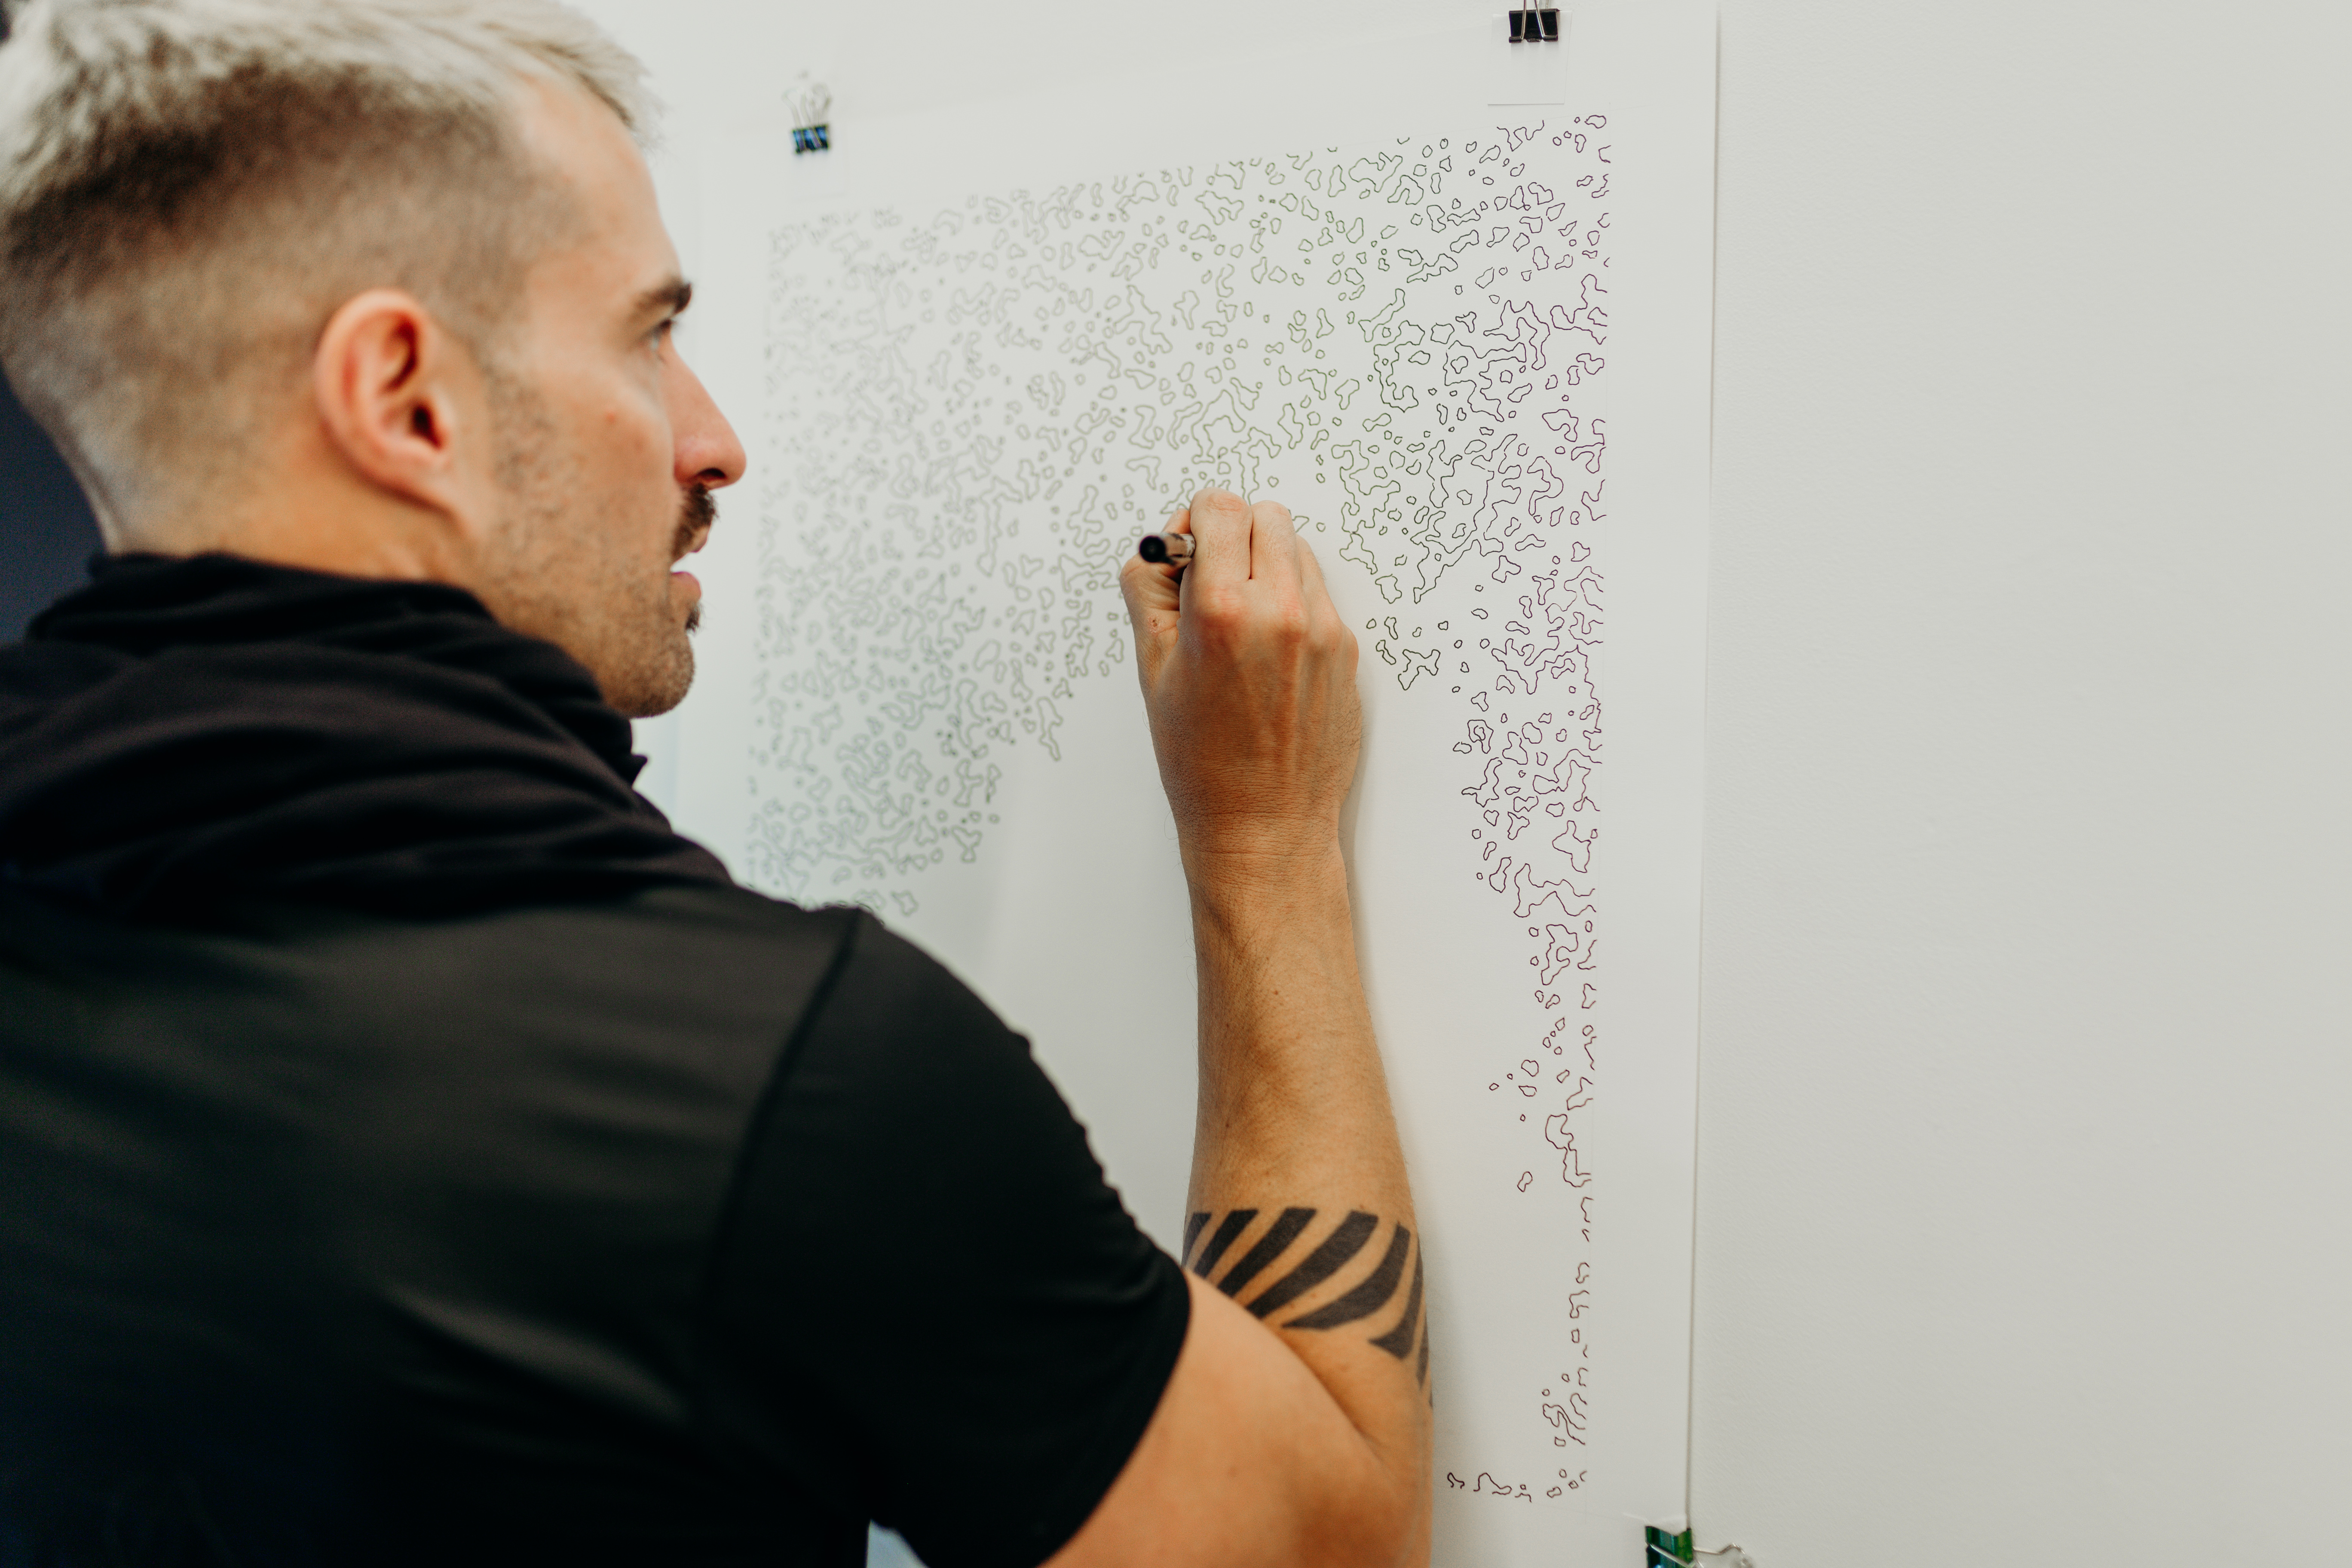 Candid shot of joel swanson drawing on a piece of paper hung on the wall. The pattern is abstract composed of several small wobbly shapes.